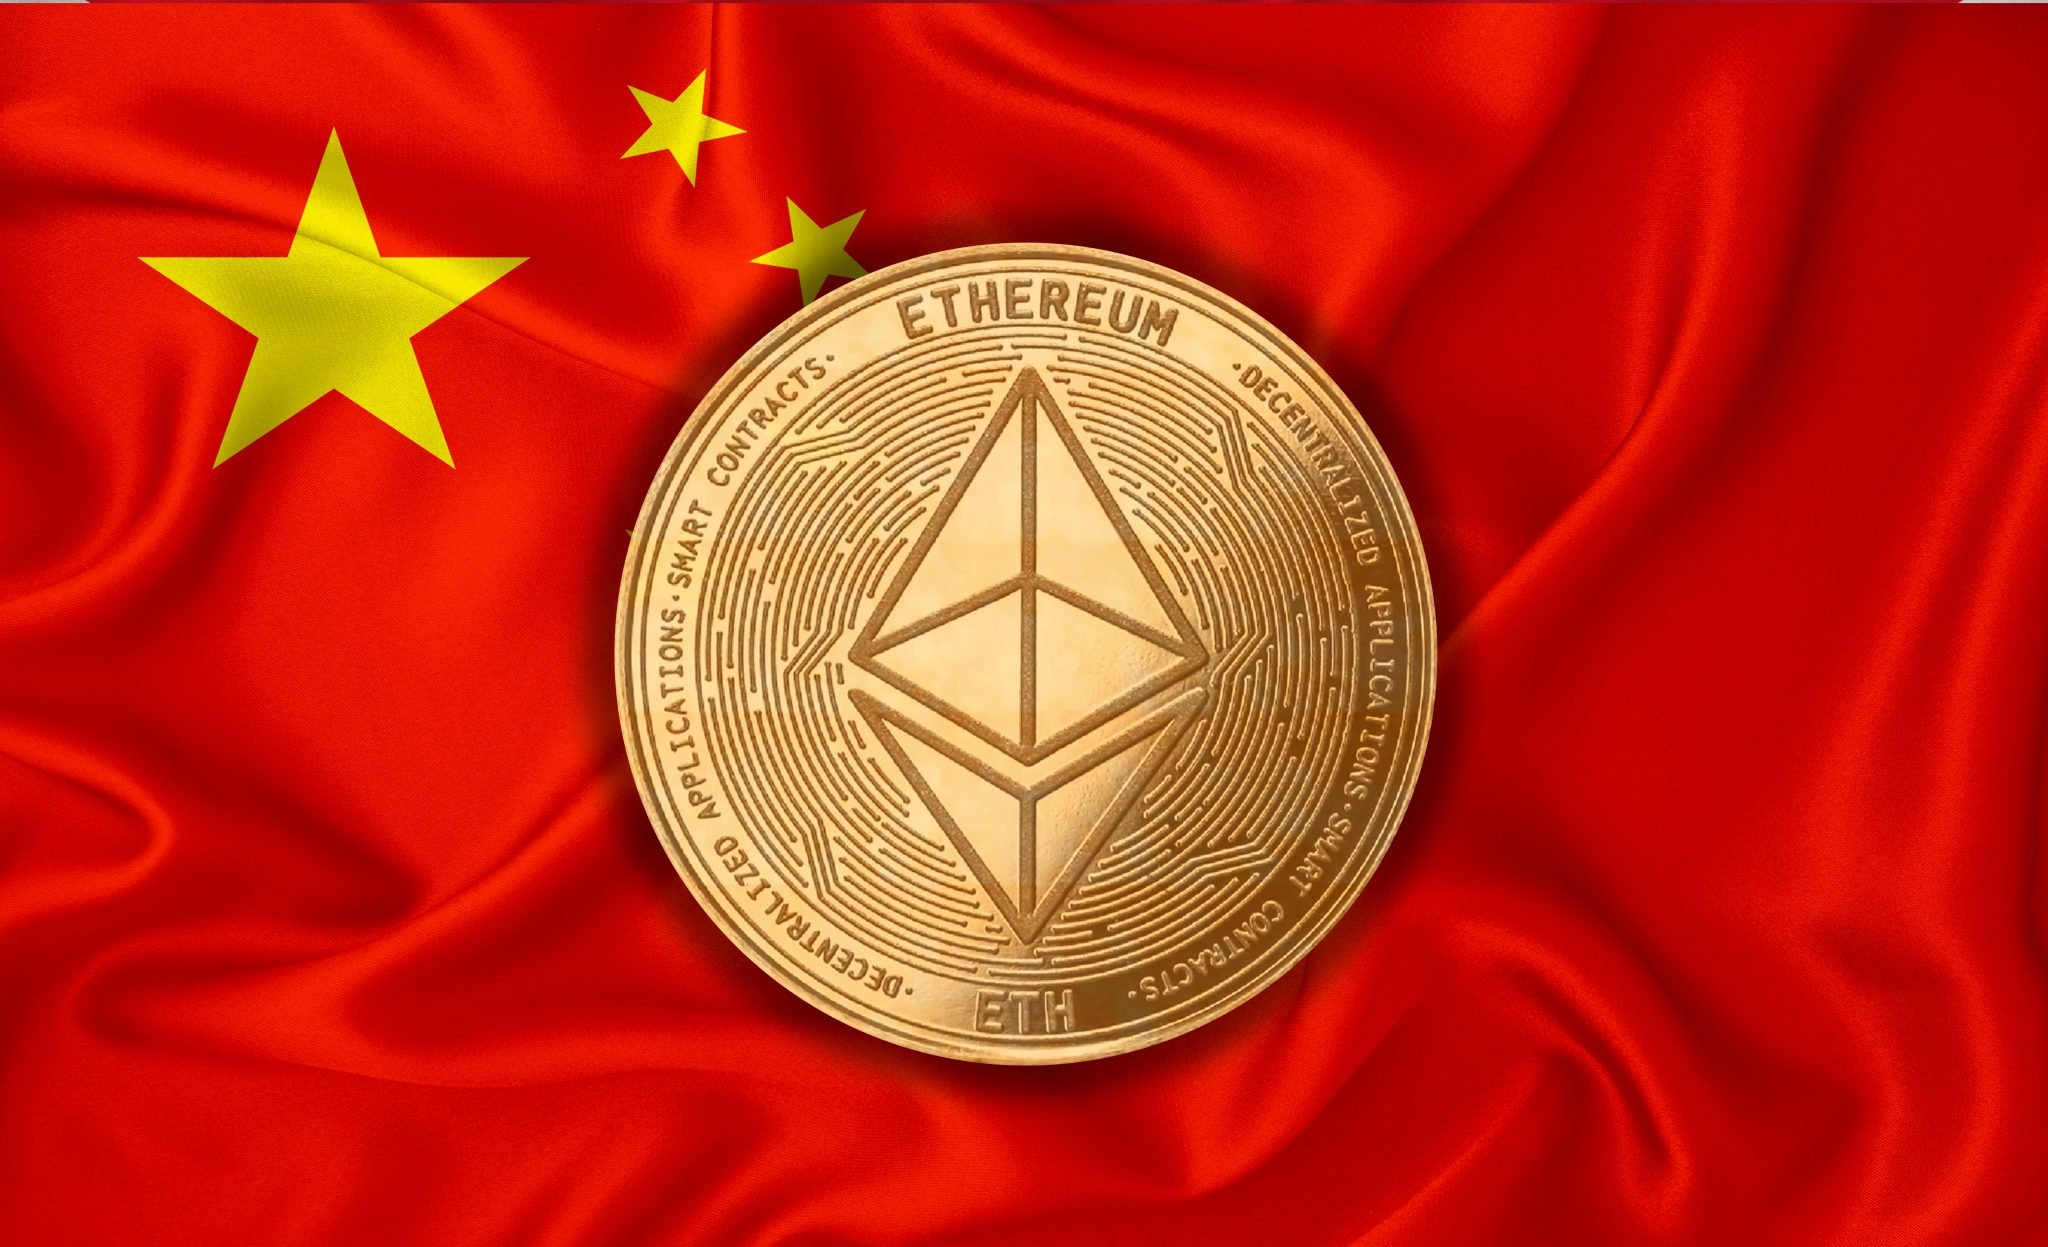 China flag, ethereum gold coin on flag background. The concept of blockchain, bitcoin, currency decentralization in the country. 3d-rendering